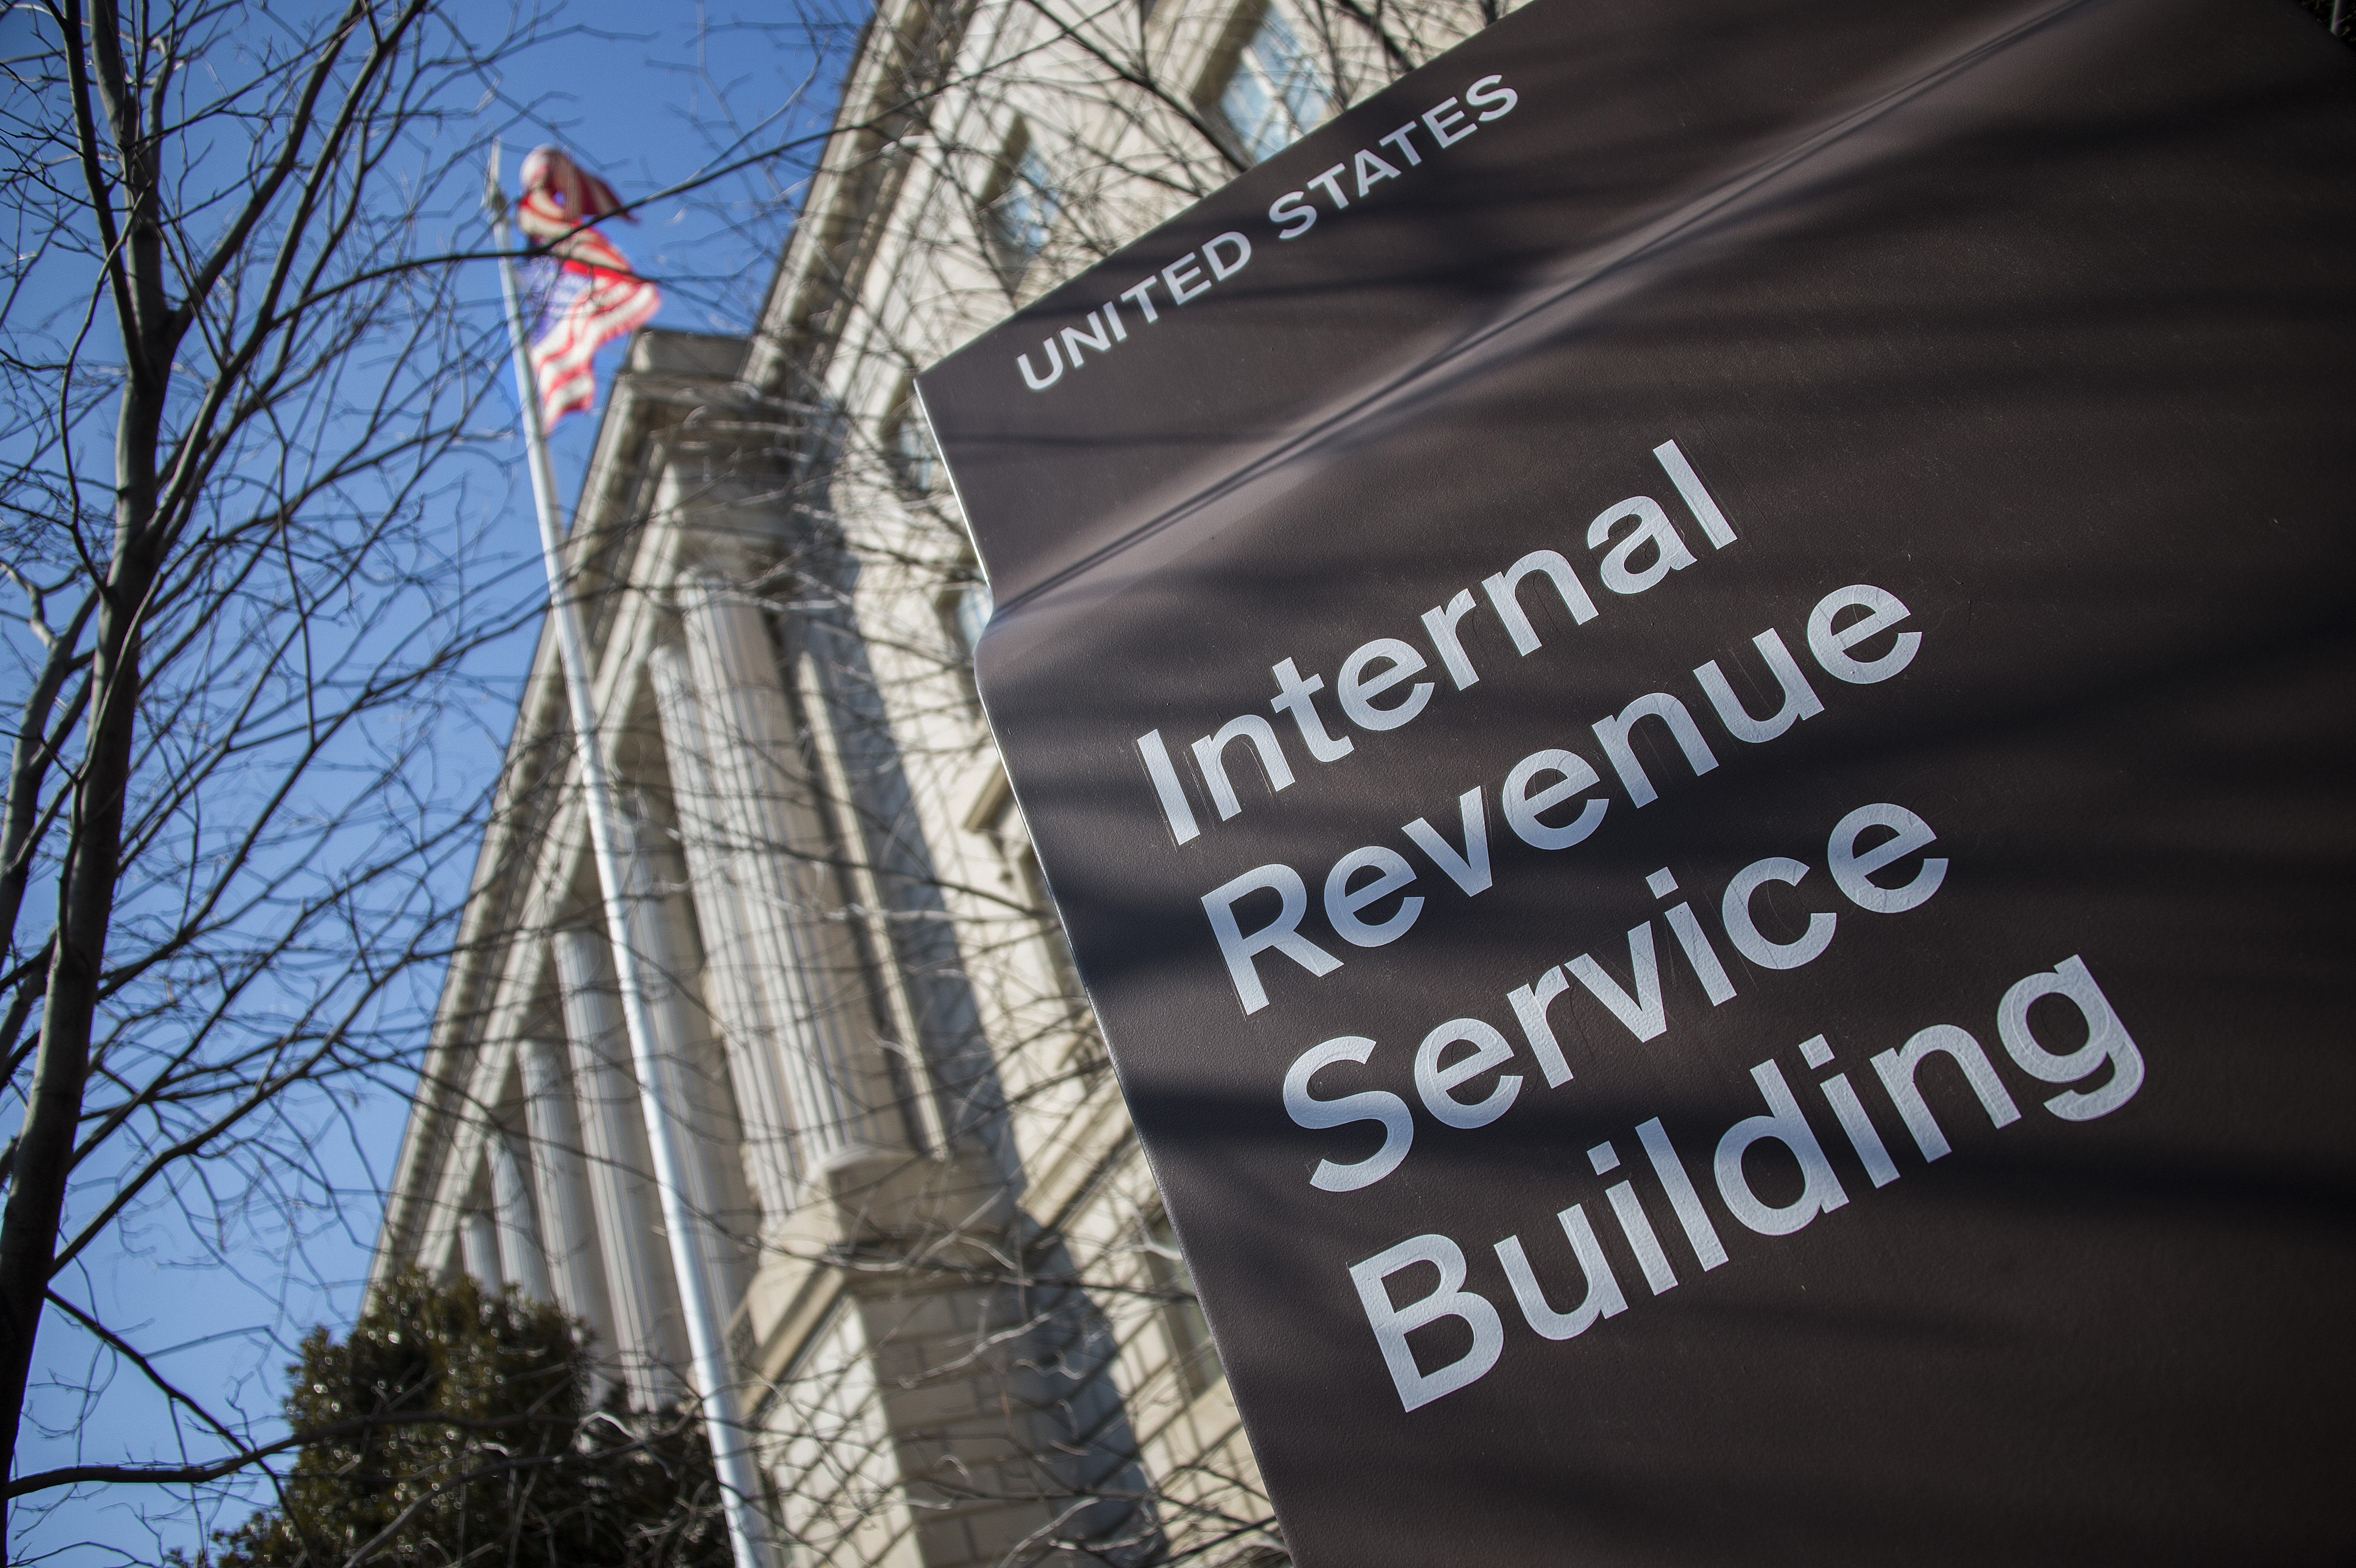 internal revenue service building